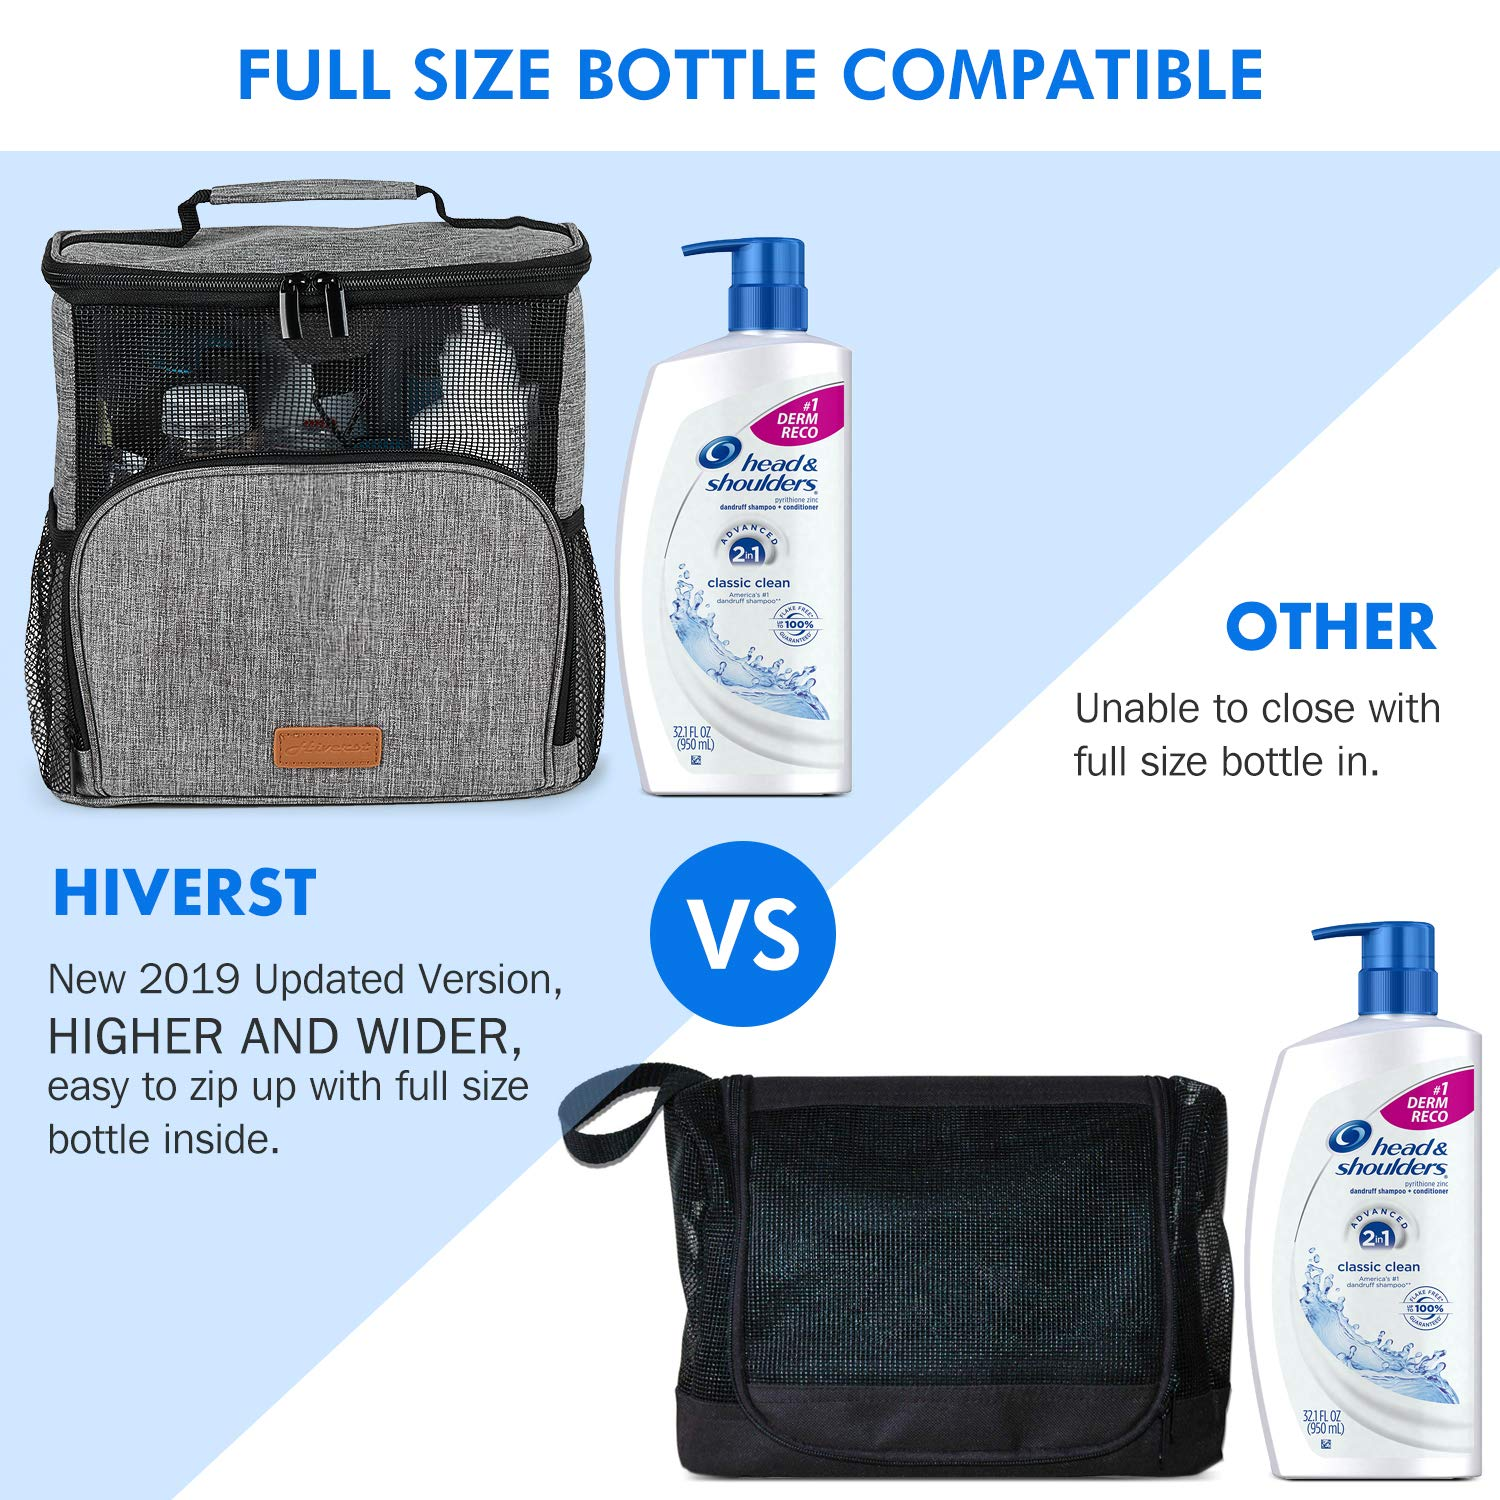 Camp Hiverst Hanging Toiletry Bag Updated Version, Full Size Bottle Compatible Women Men Shower Caddy Tote Bag Bath Organizer for College Dorms with Funny Luggage Tag Gym